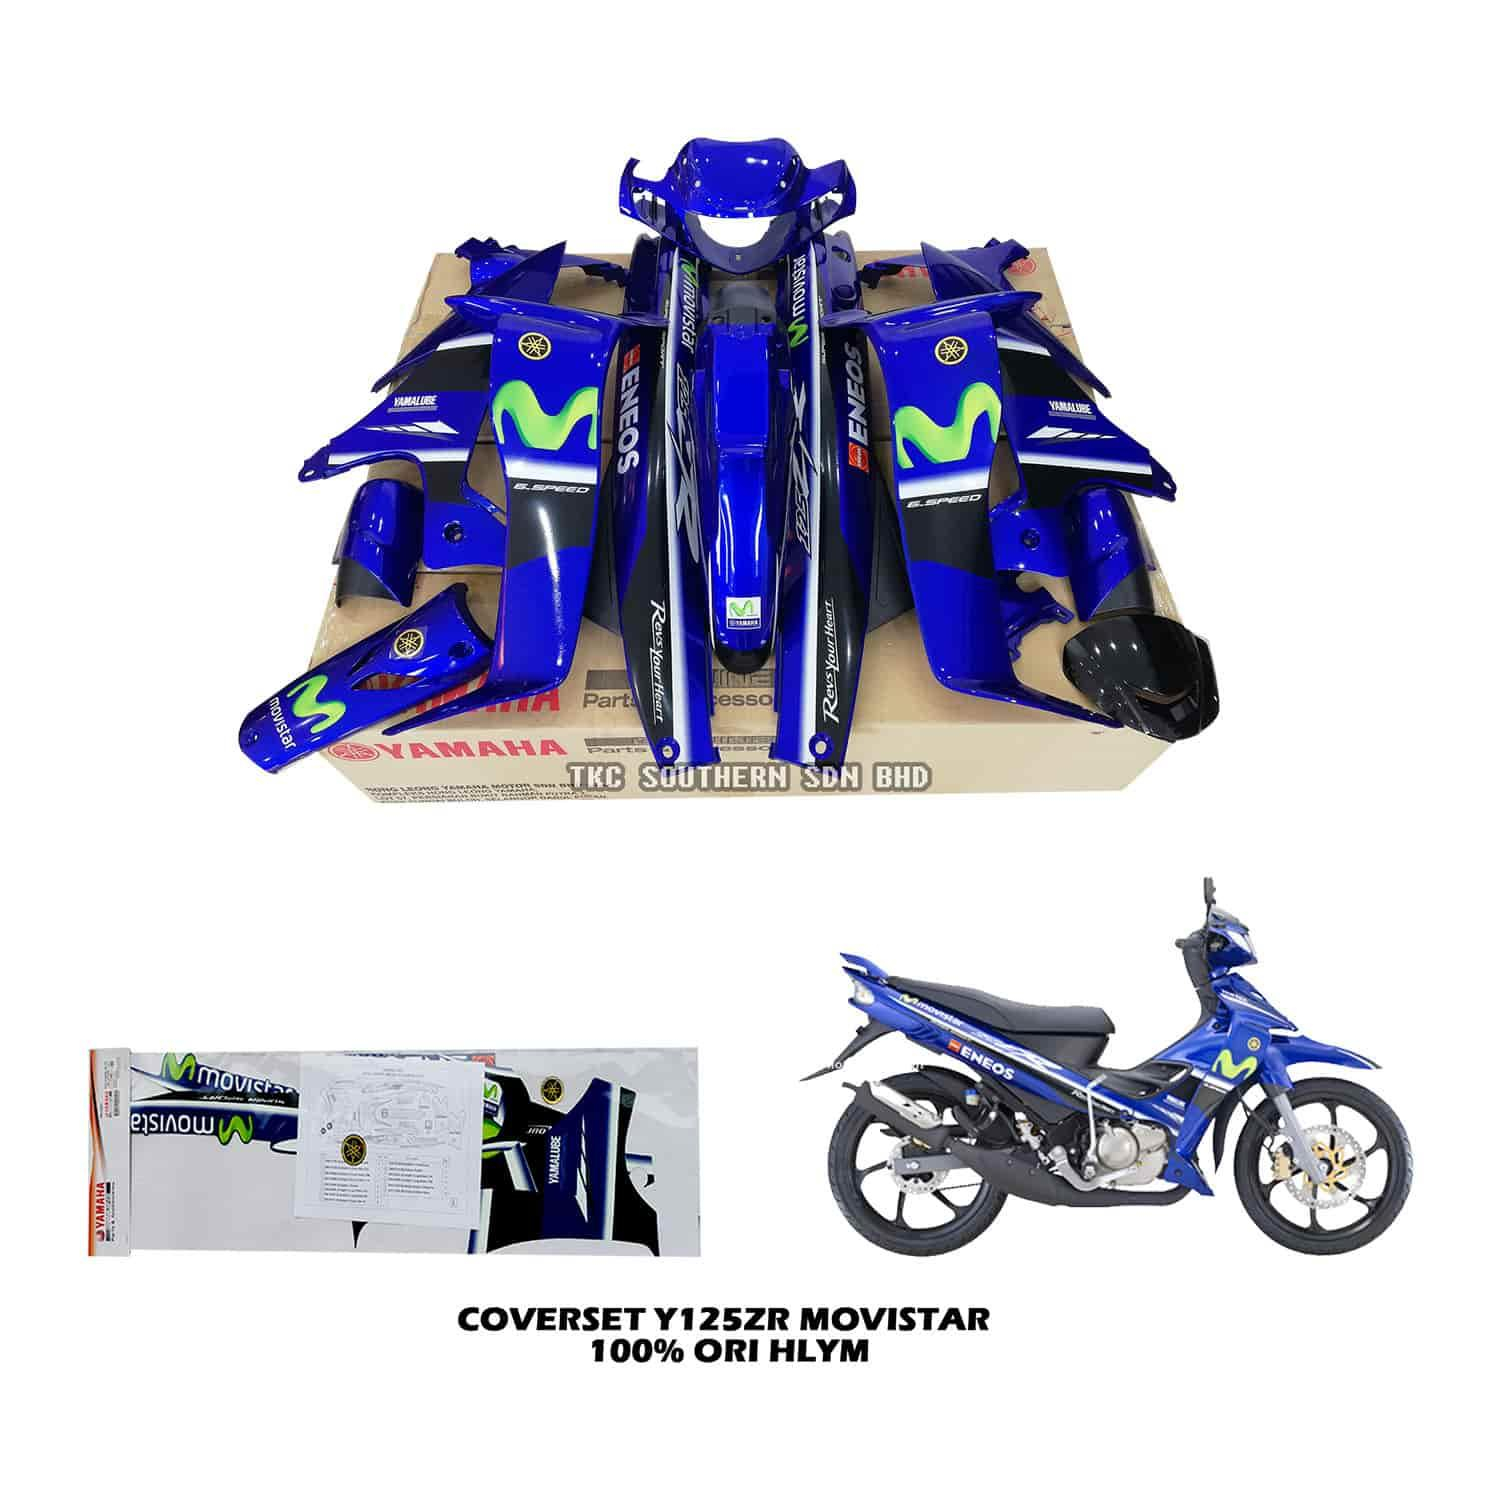 TbxThb motor covers motor covers at best price